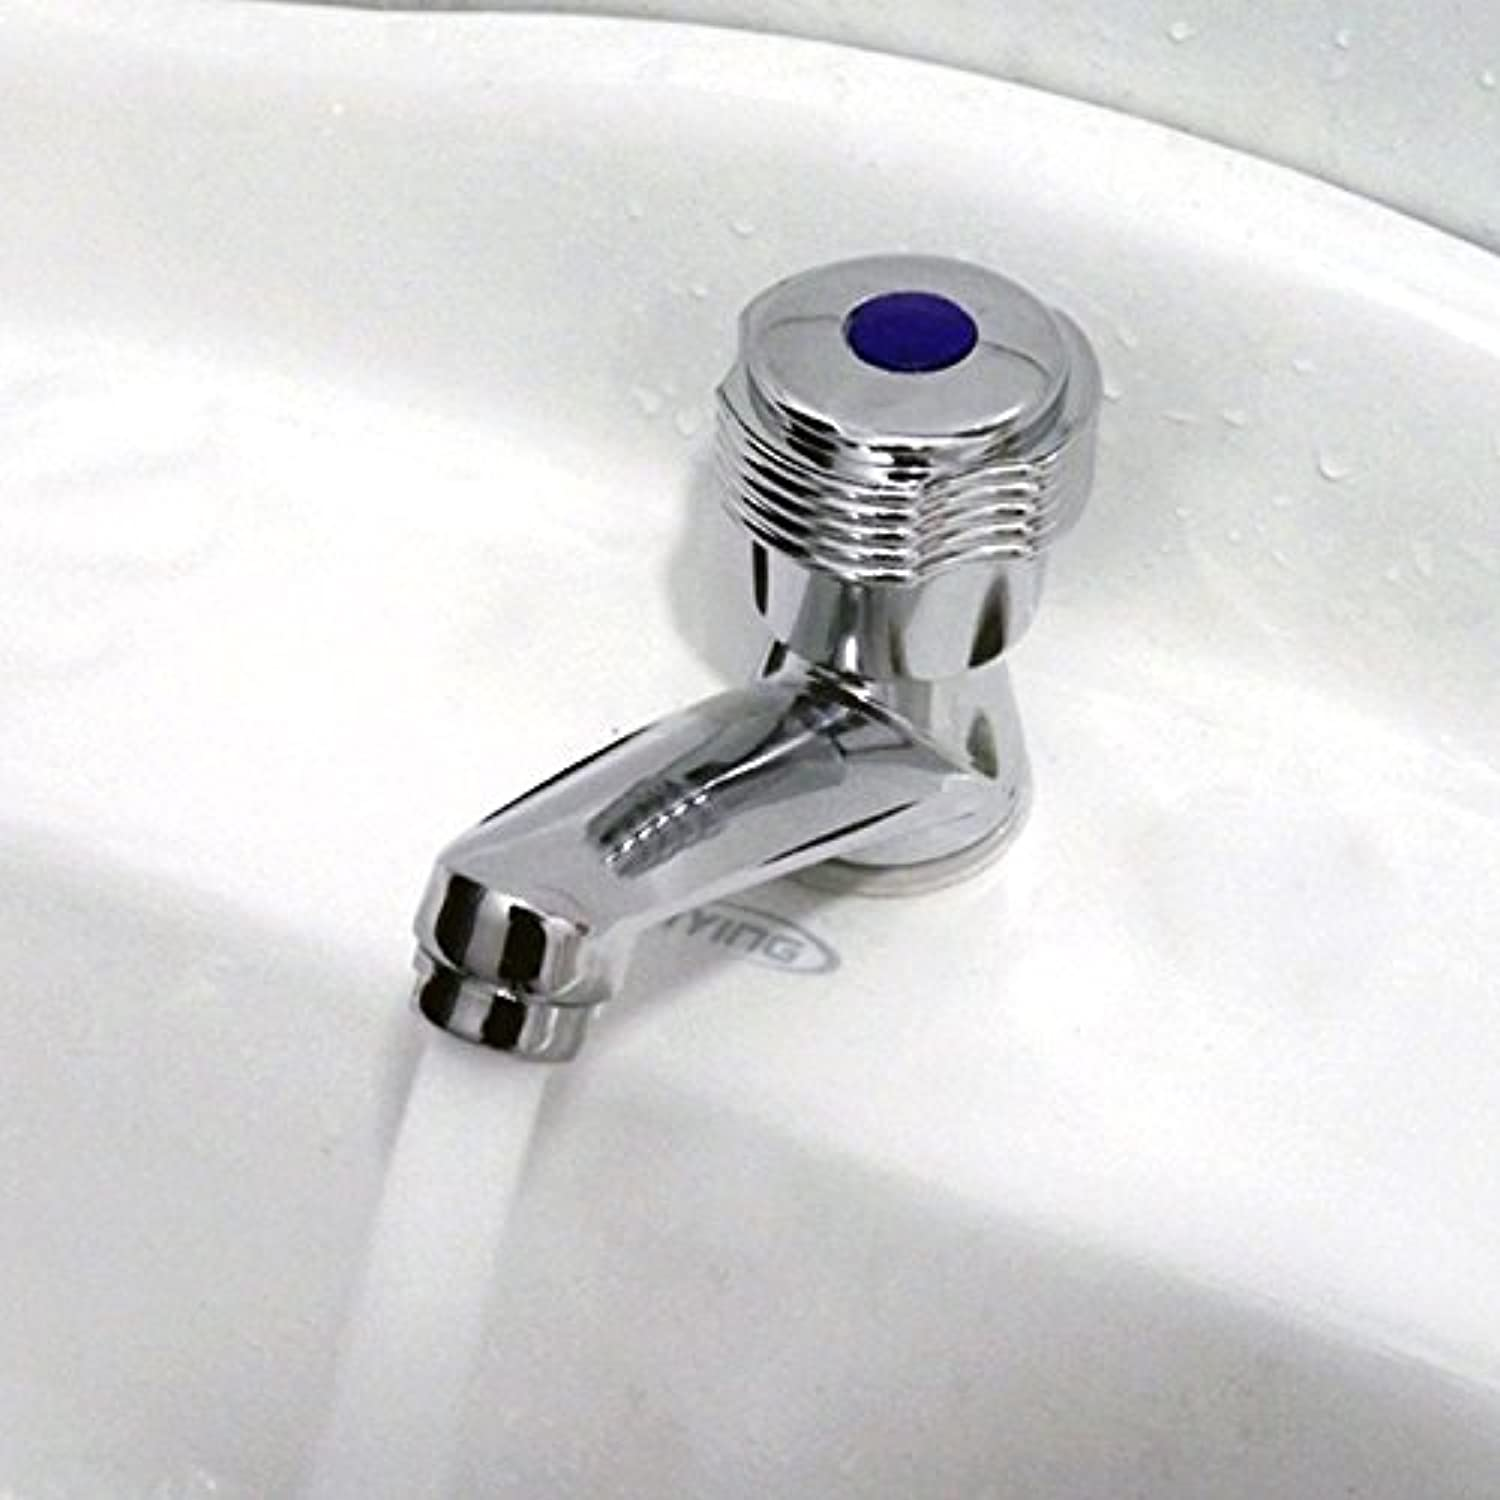 Ddlli F6Lavatory Bathroom Faucets for Kitchen Sink Tap Shower Mixer Tap Toilet Tap greenical Single Cold